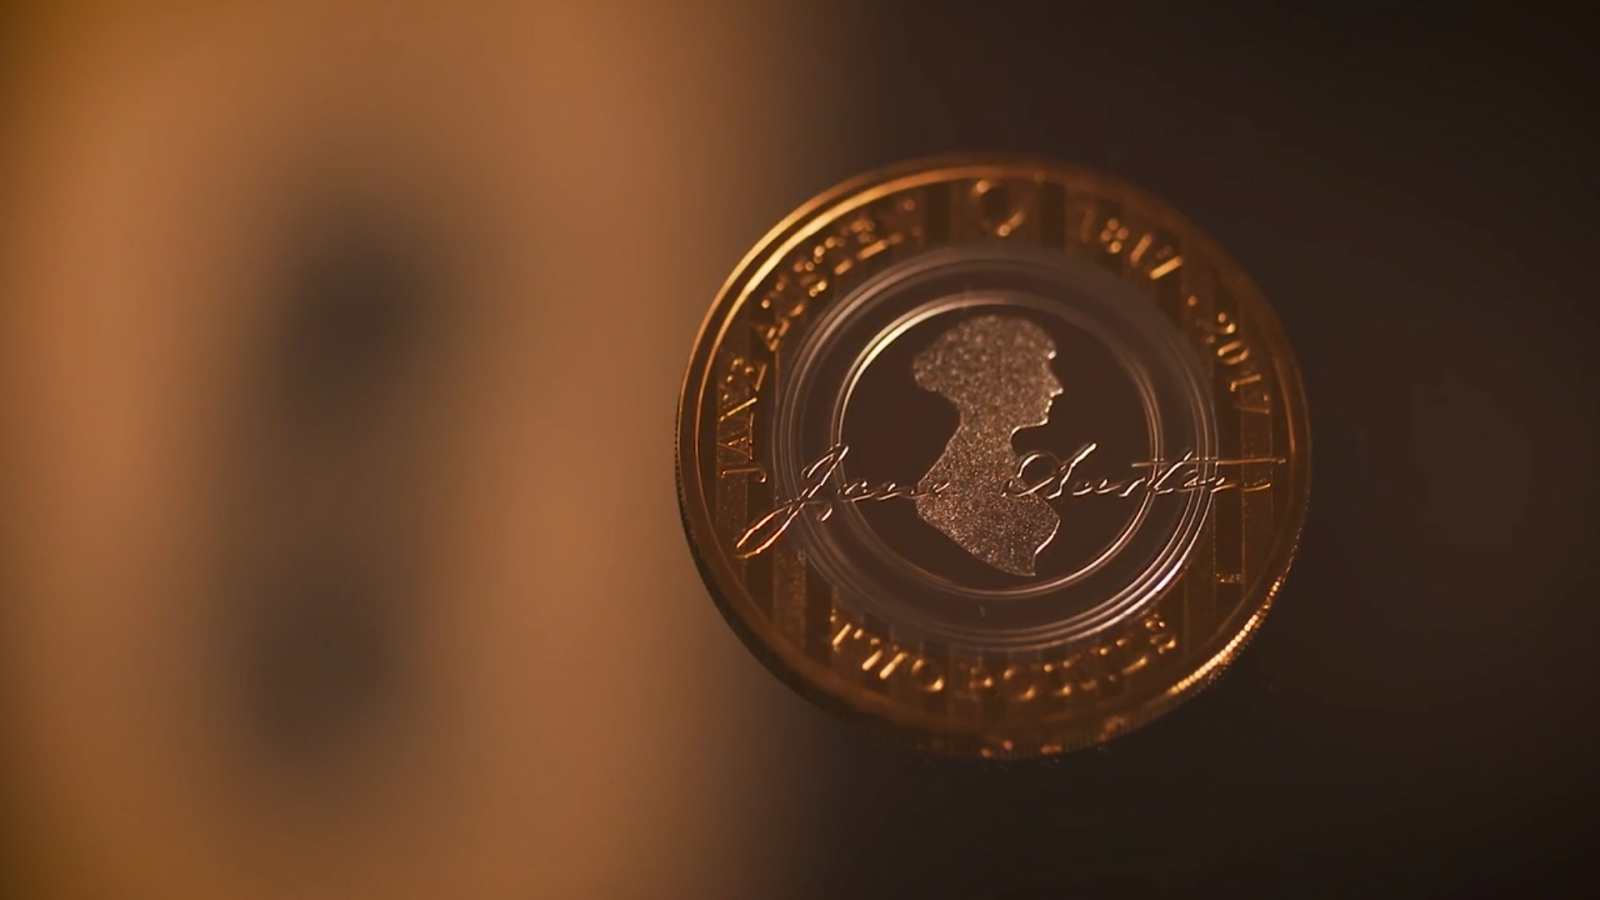 jane-austen-200-new-two-pound-coin-marks-anniversary-of-writers-death